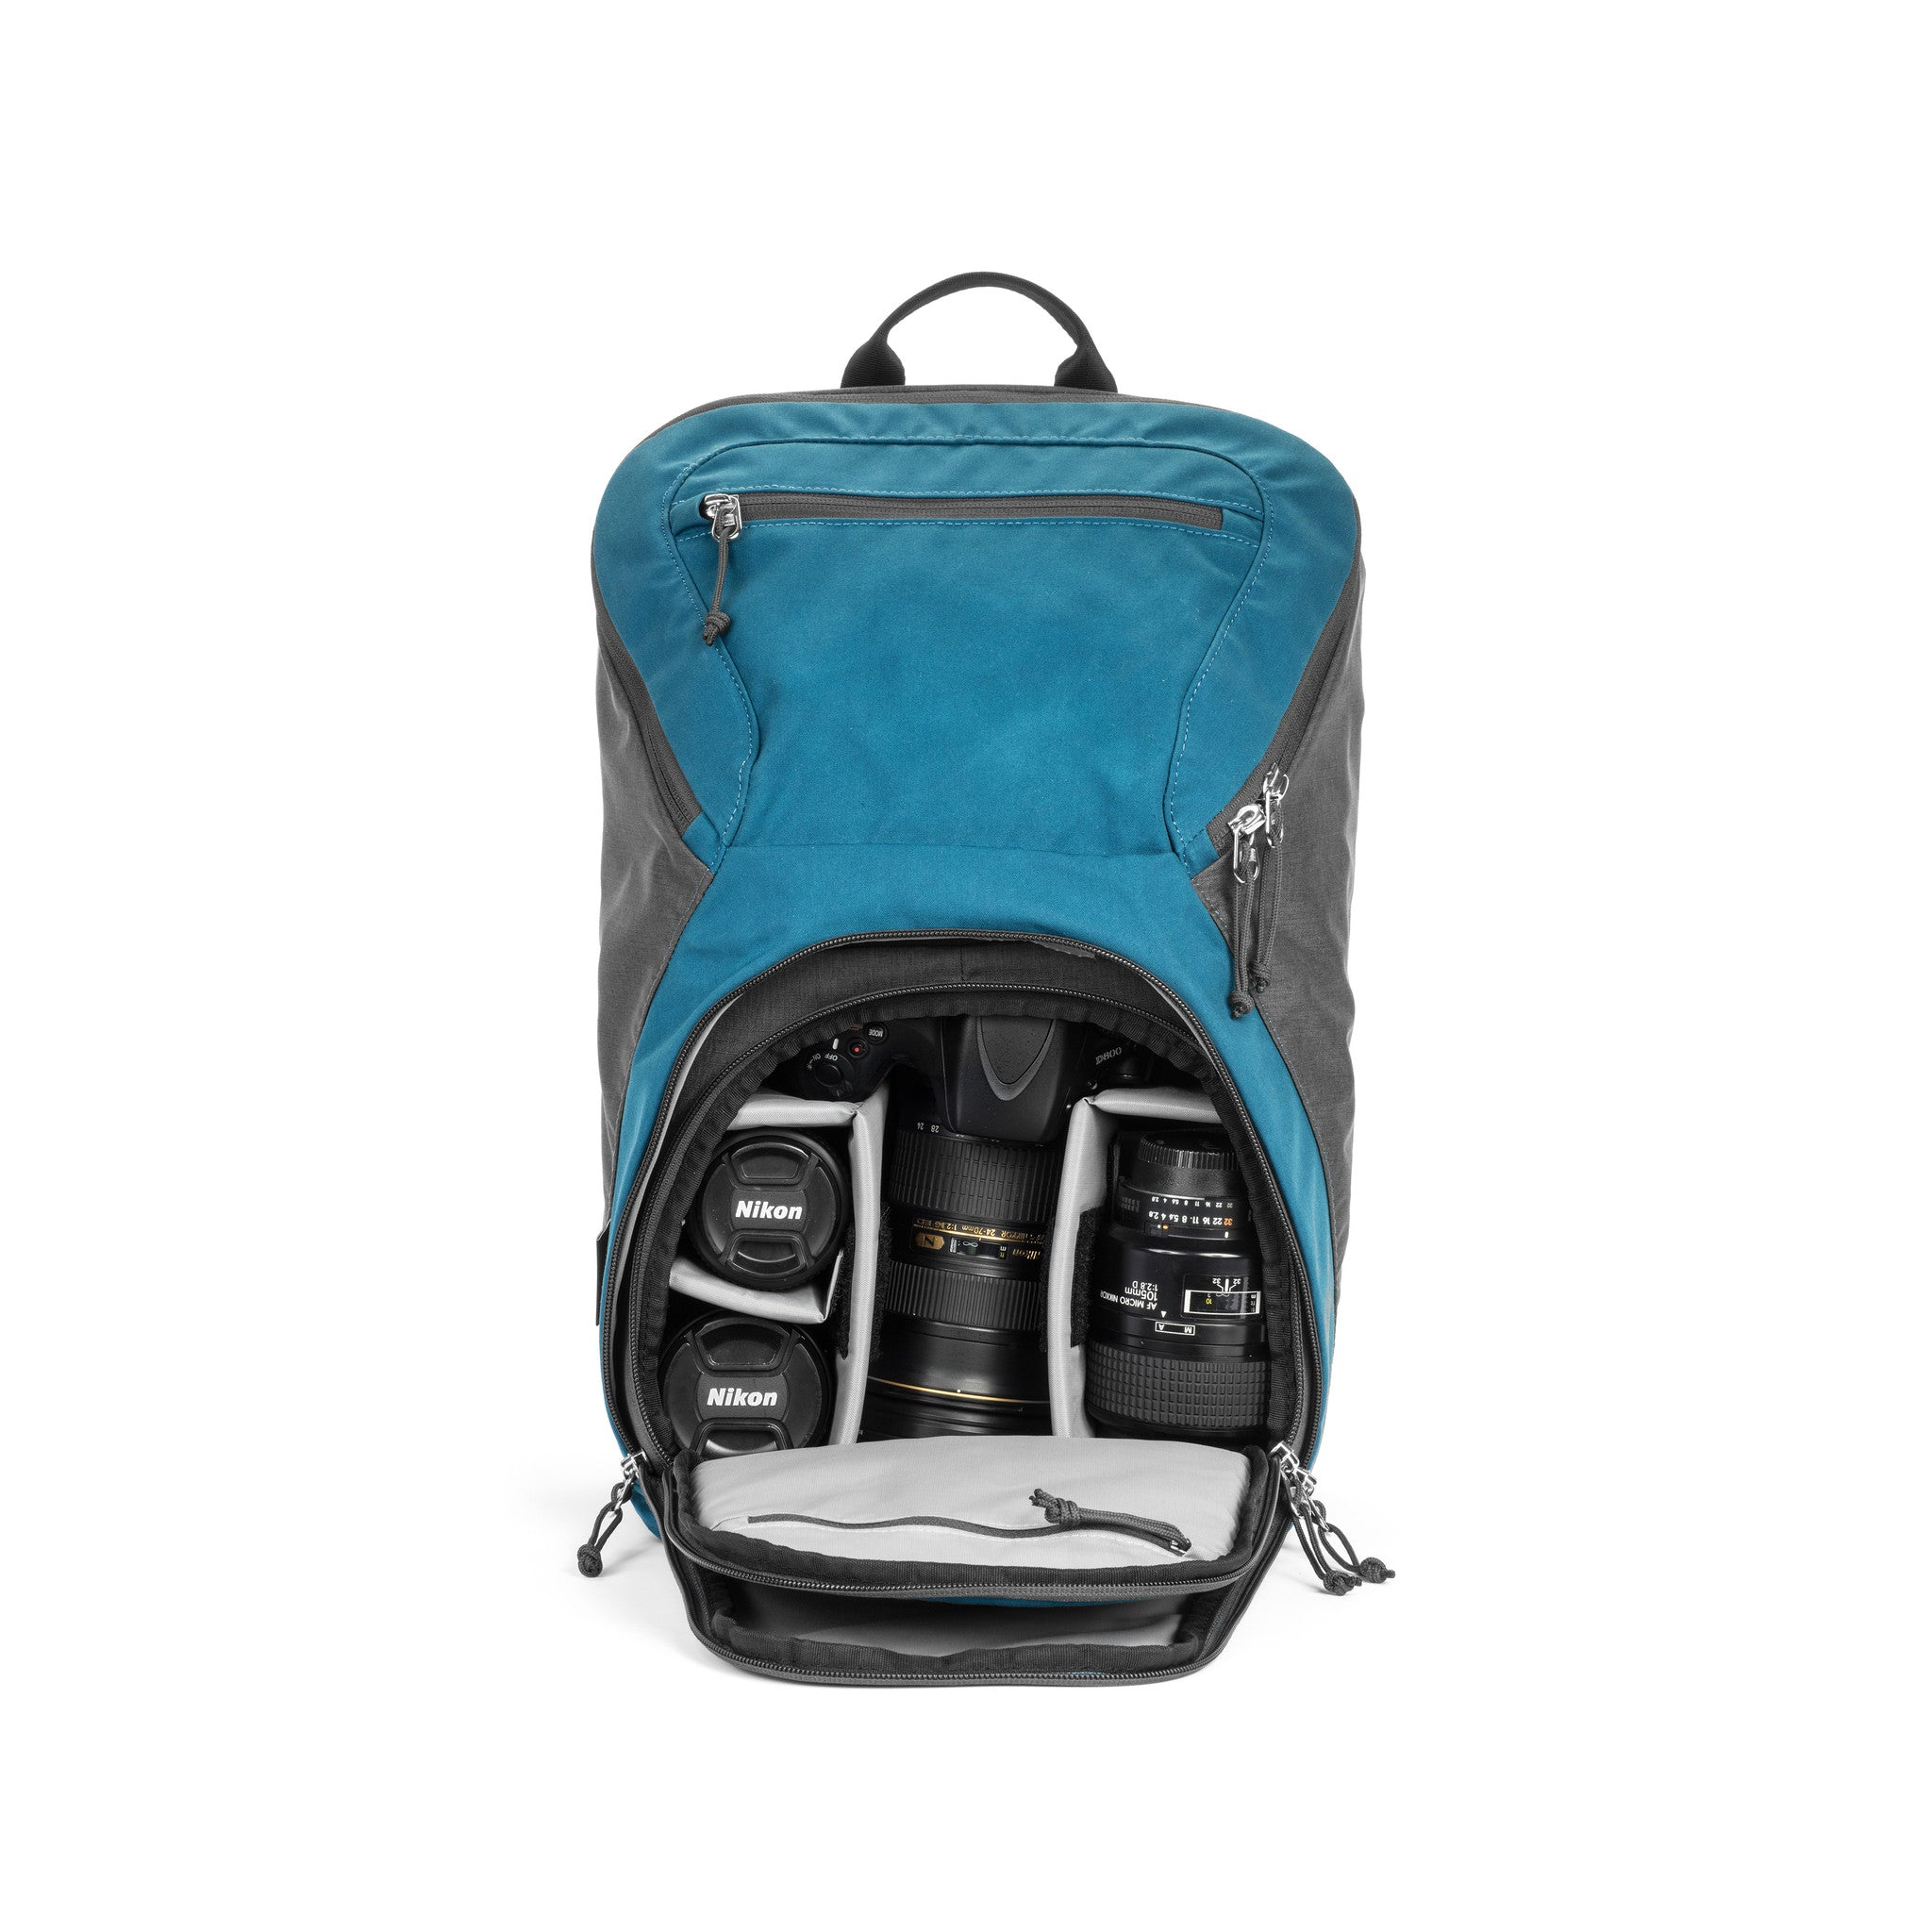 Hoodoo 20 Photo Daypack Camera Backpack - TAMRAC